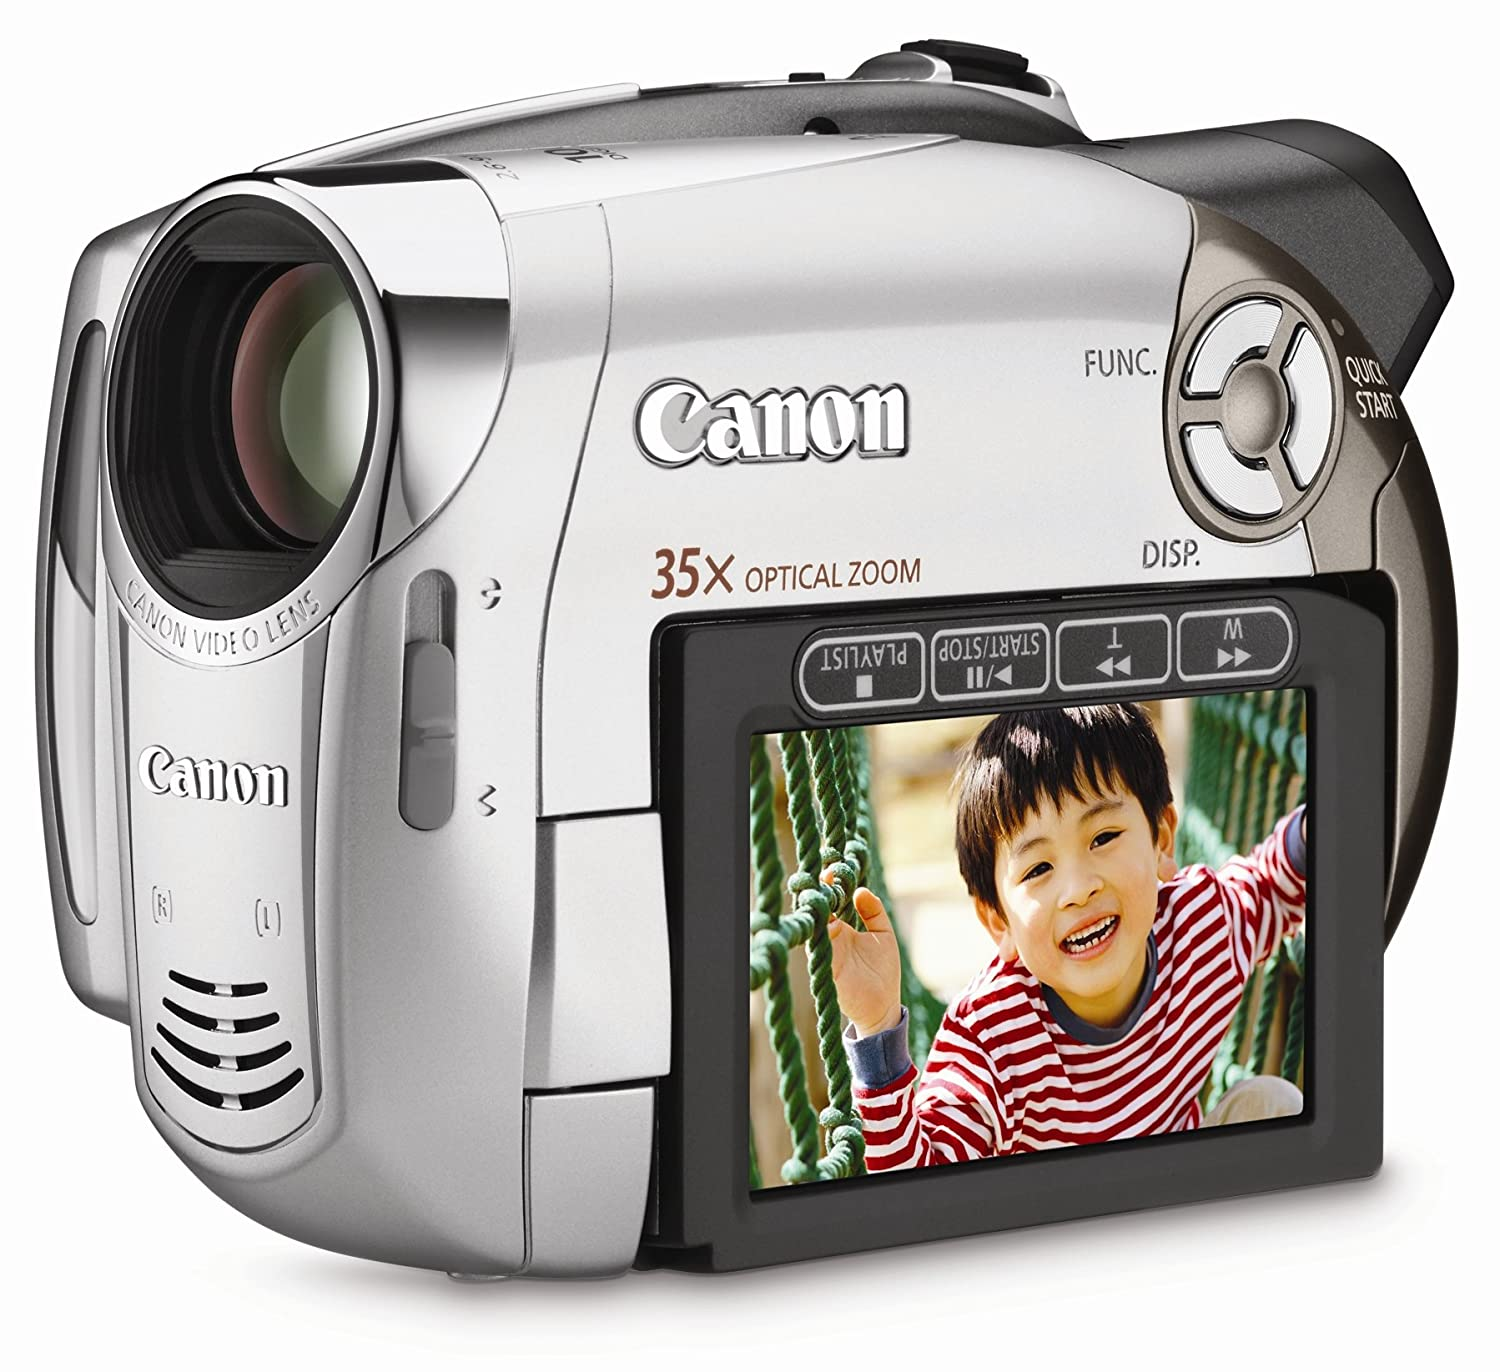 Amazon.com : Canon DC230 1MP DVD Camcorder with 35x Optical Zoom  (Discontinued by Manufacturer) : Camera & Photo